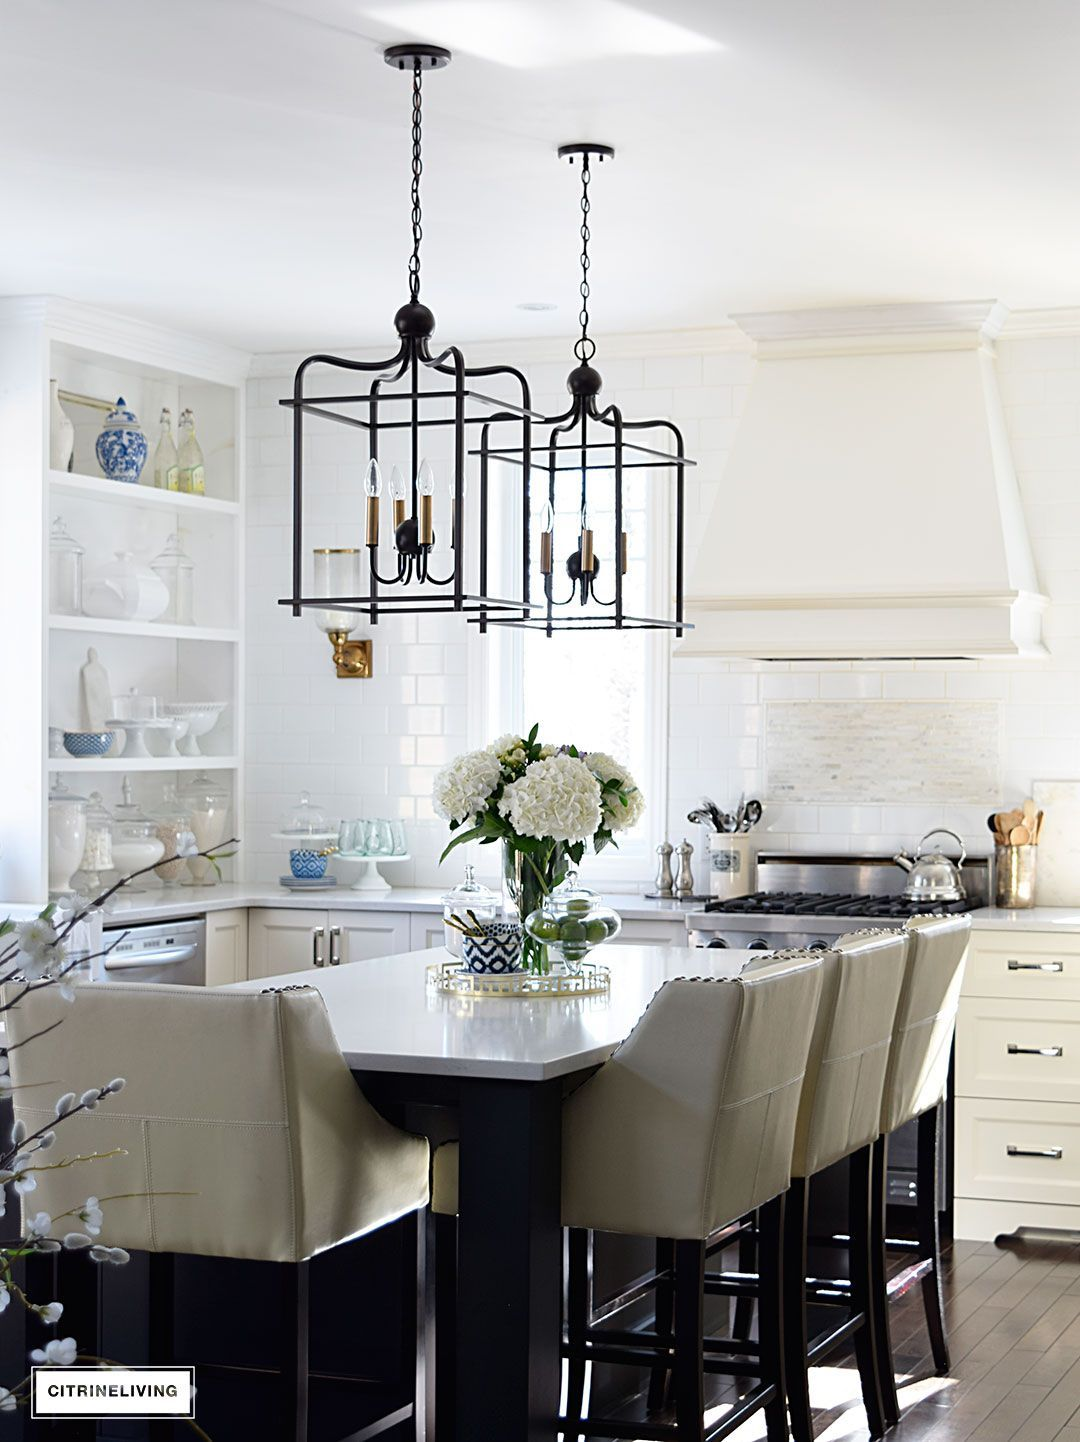 lantern style pendant lighting. Bright And Airy Kitchen With Lantern Style Pendant Lighting Over The Island. A